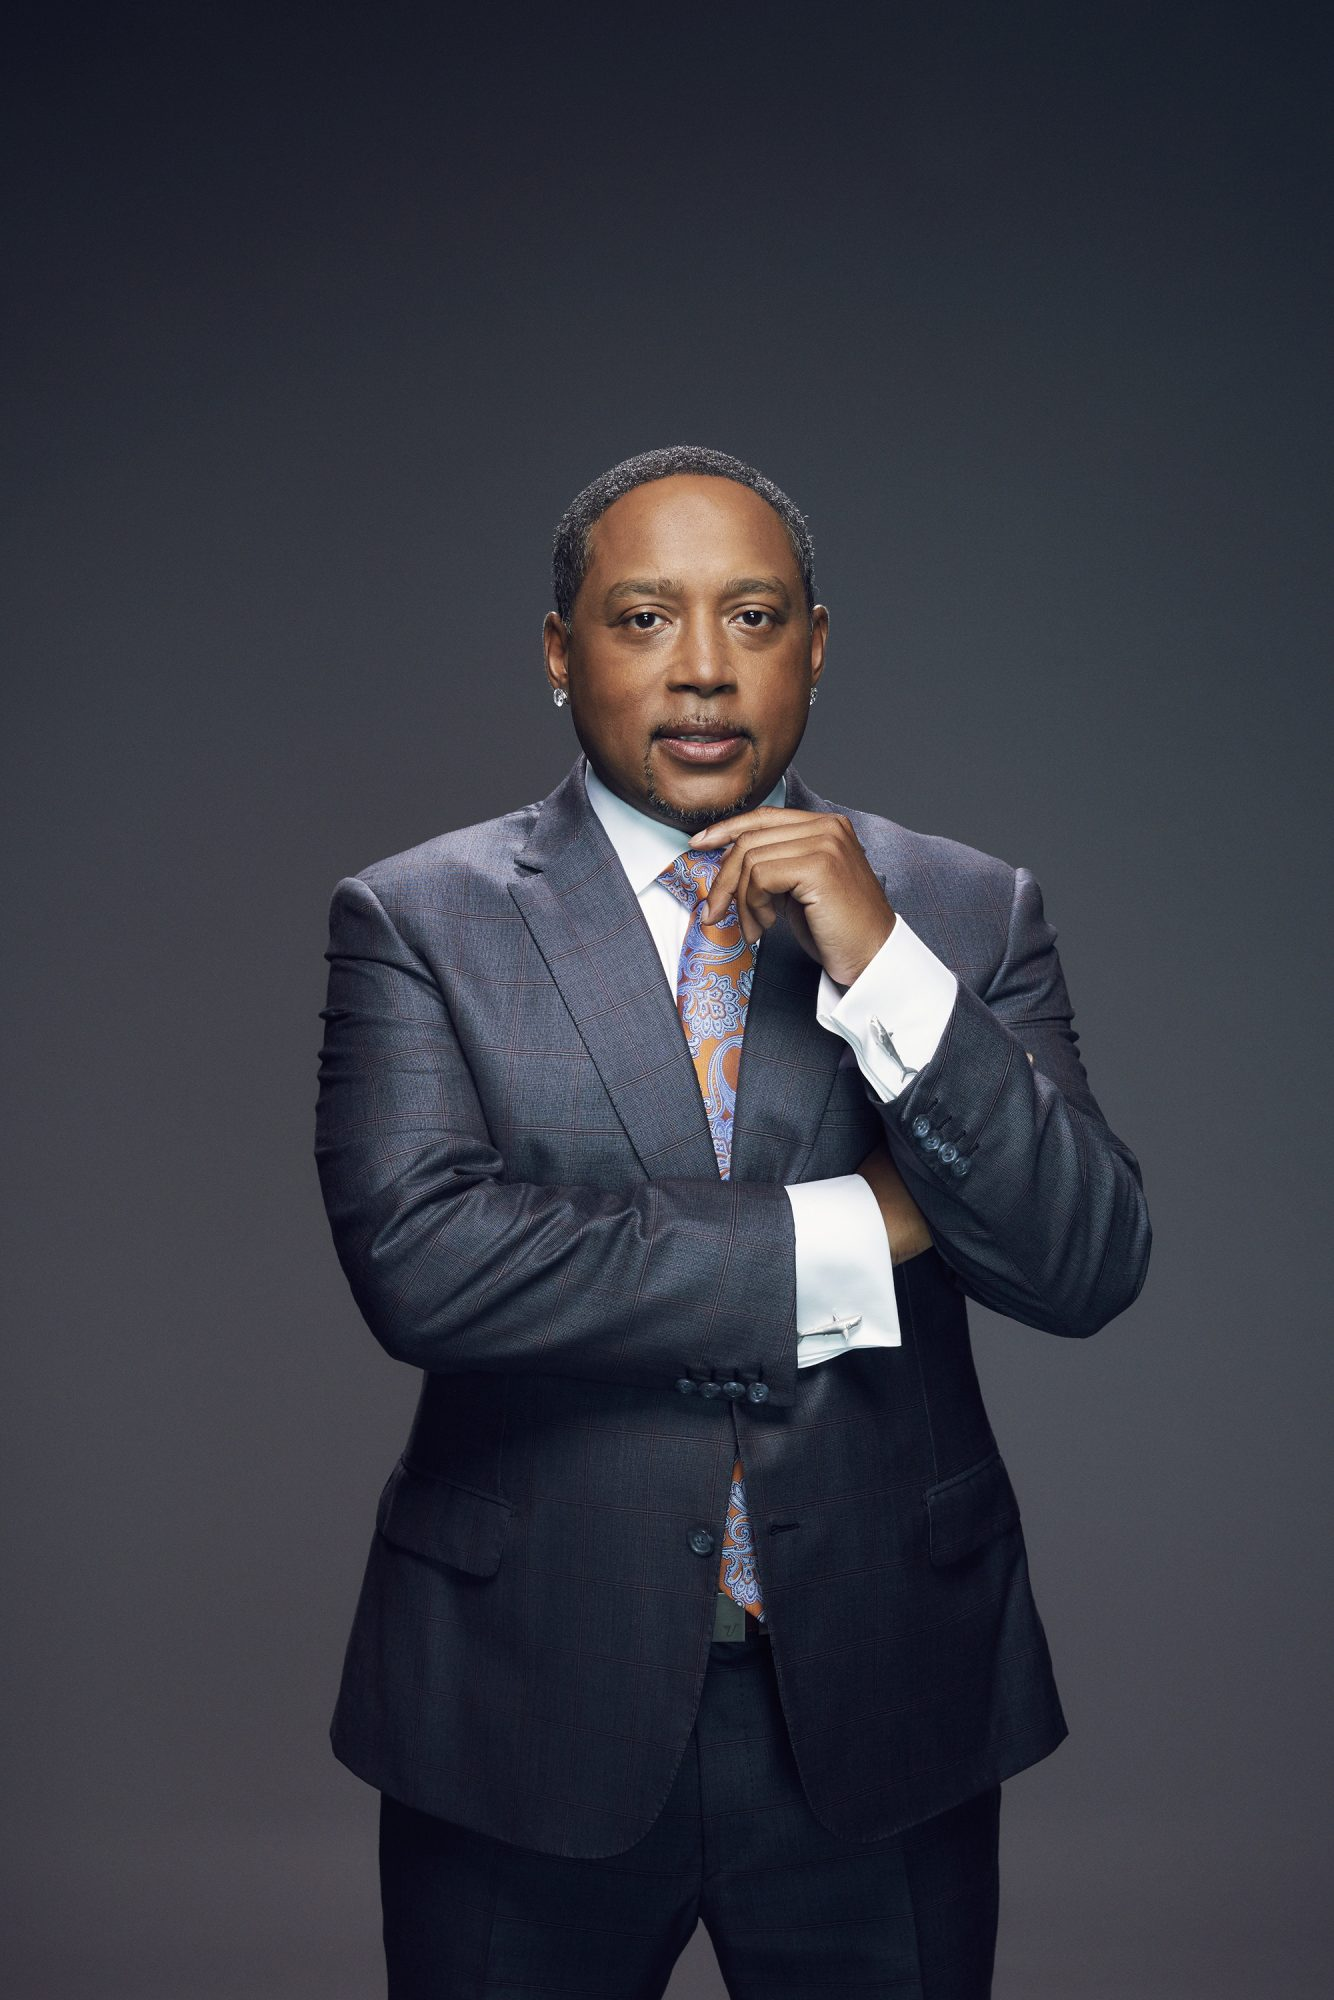 What You Need to Know About Thyroid Cancer and Shark Tank's Daymond John's Diagnosis